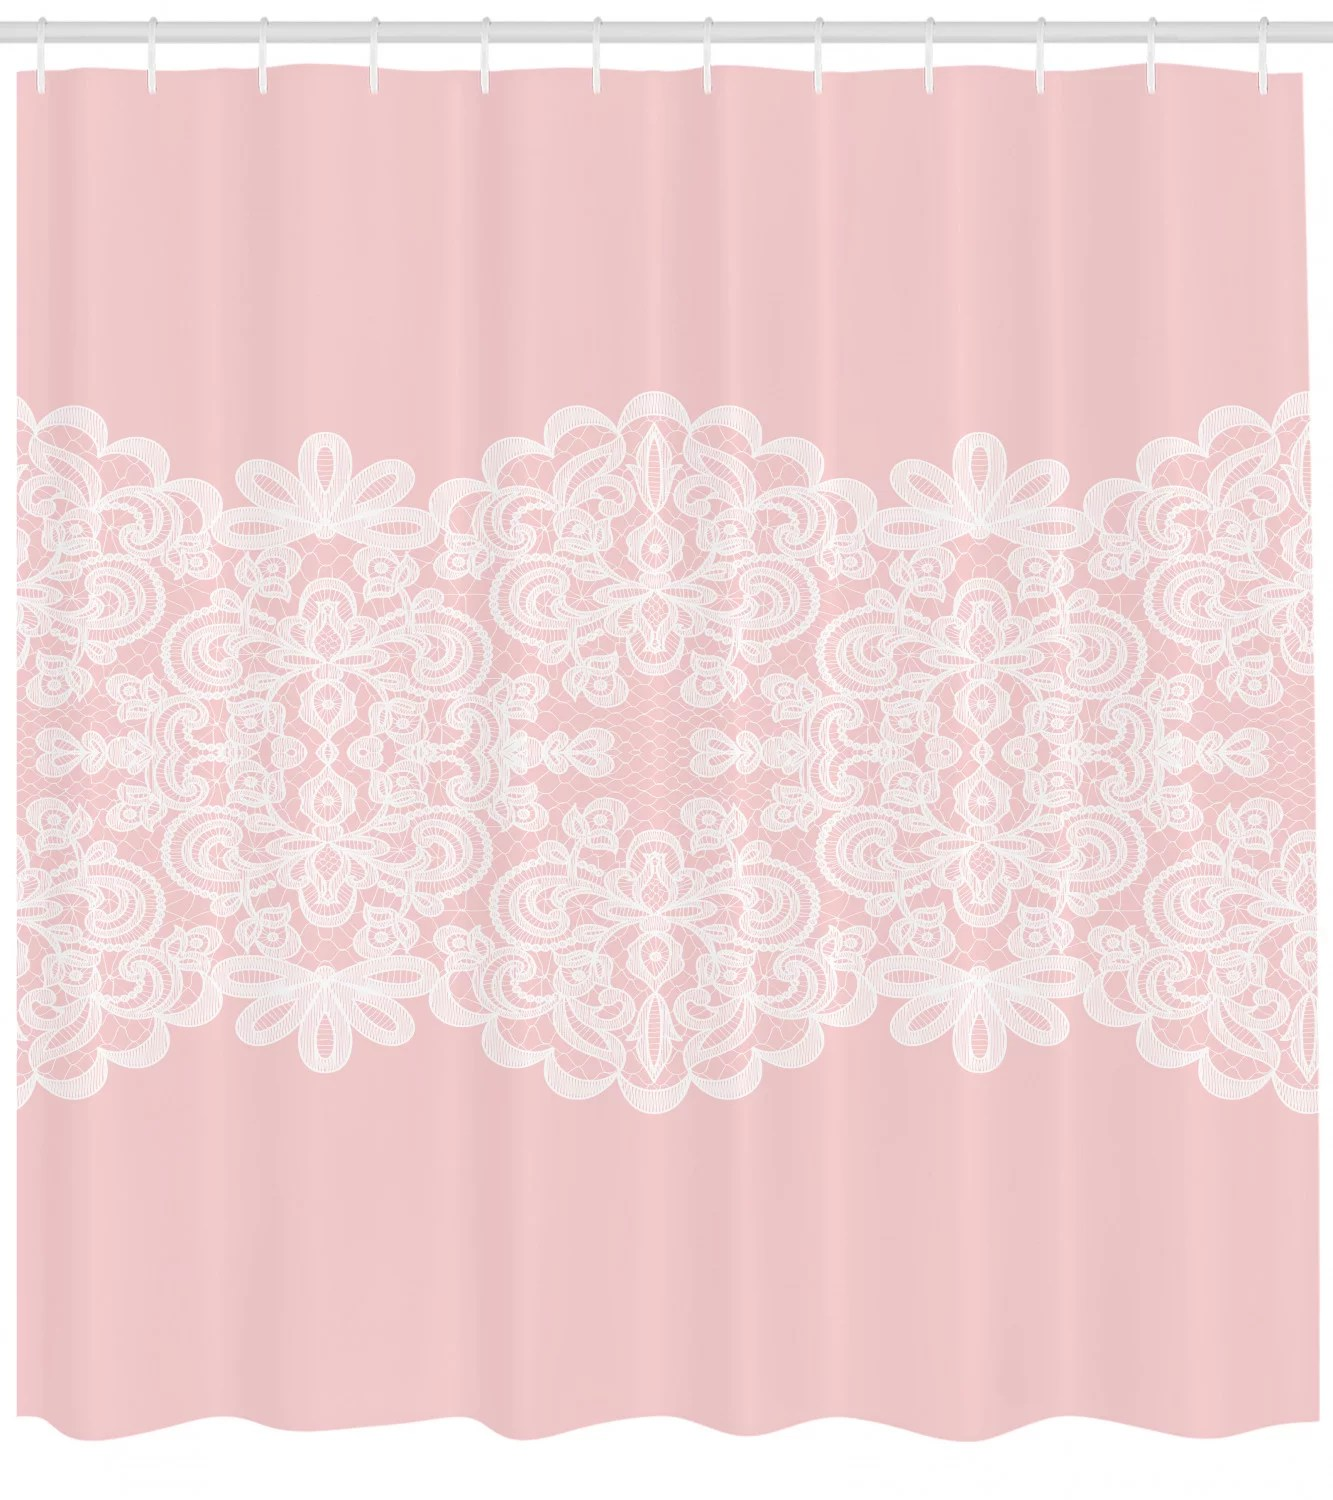 pink and white shower curtain white needlework ornament on pastel backdrop vintage wedding bridal theme fabric bathroom set with hooks 69w x 75l